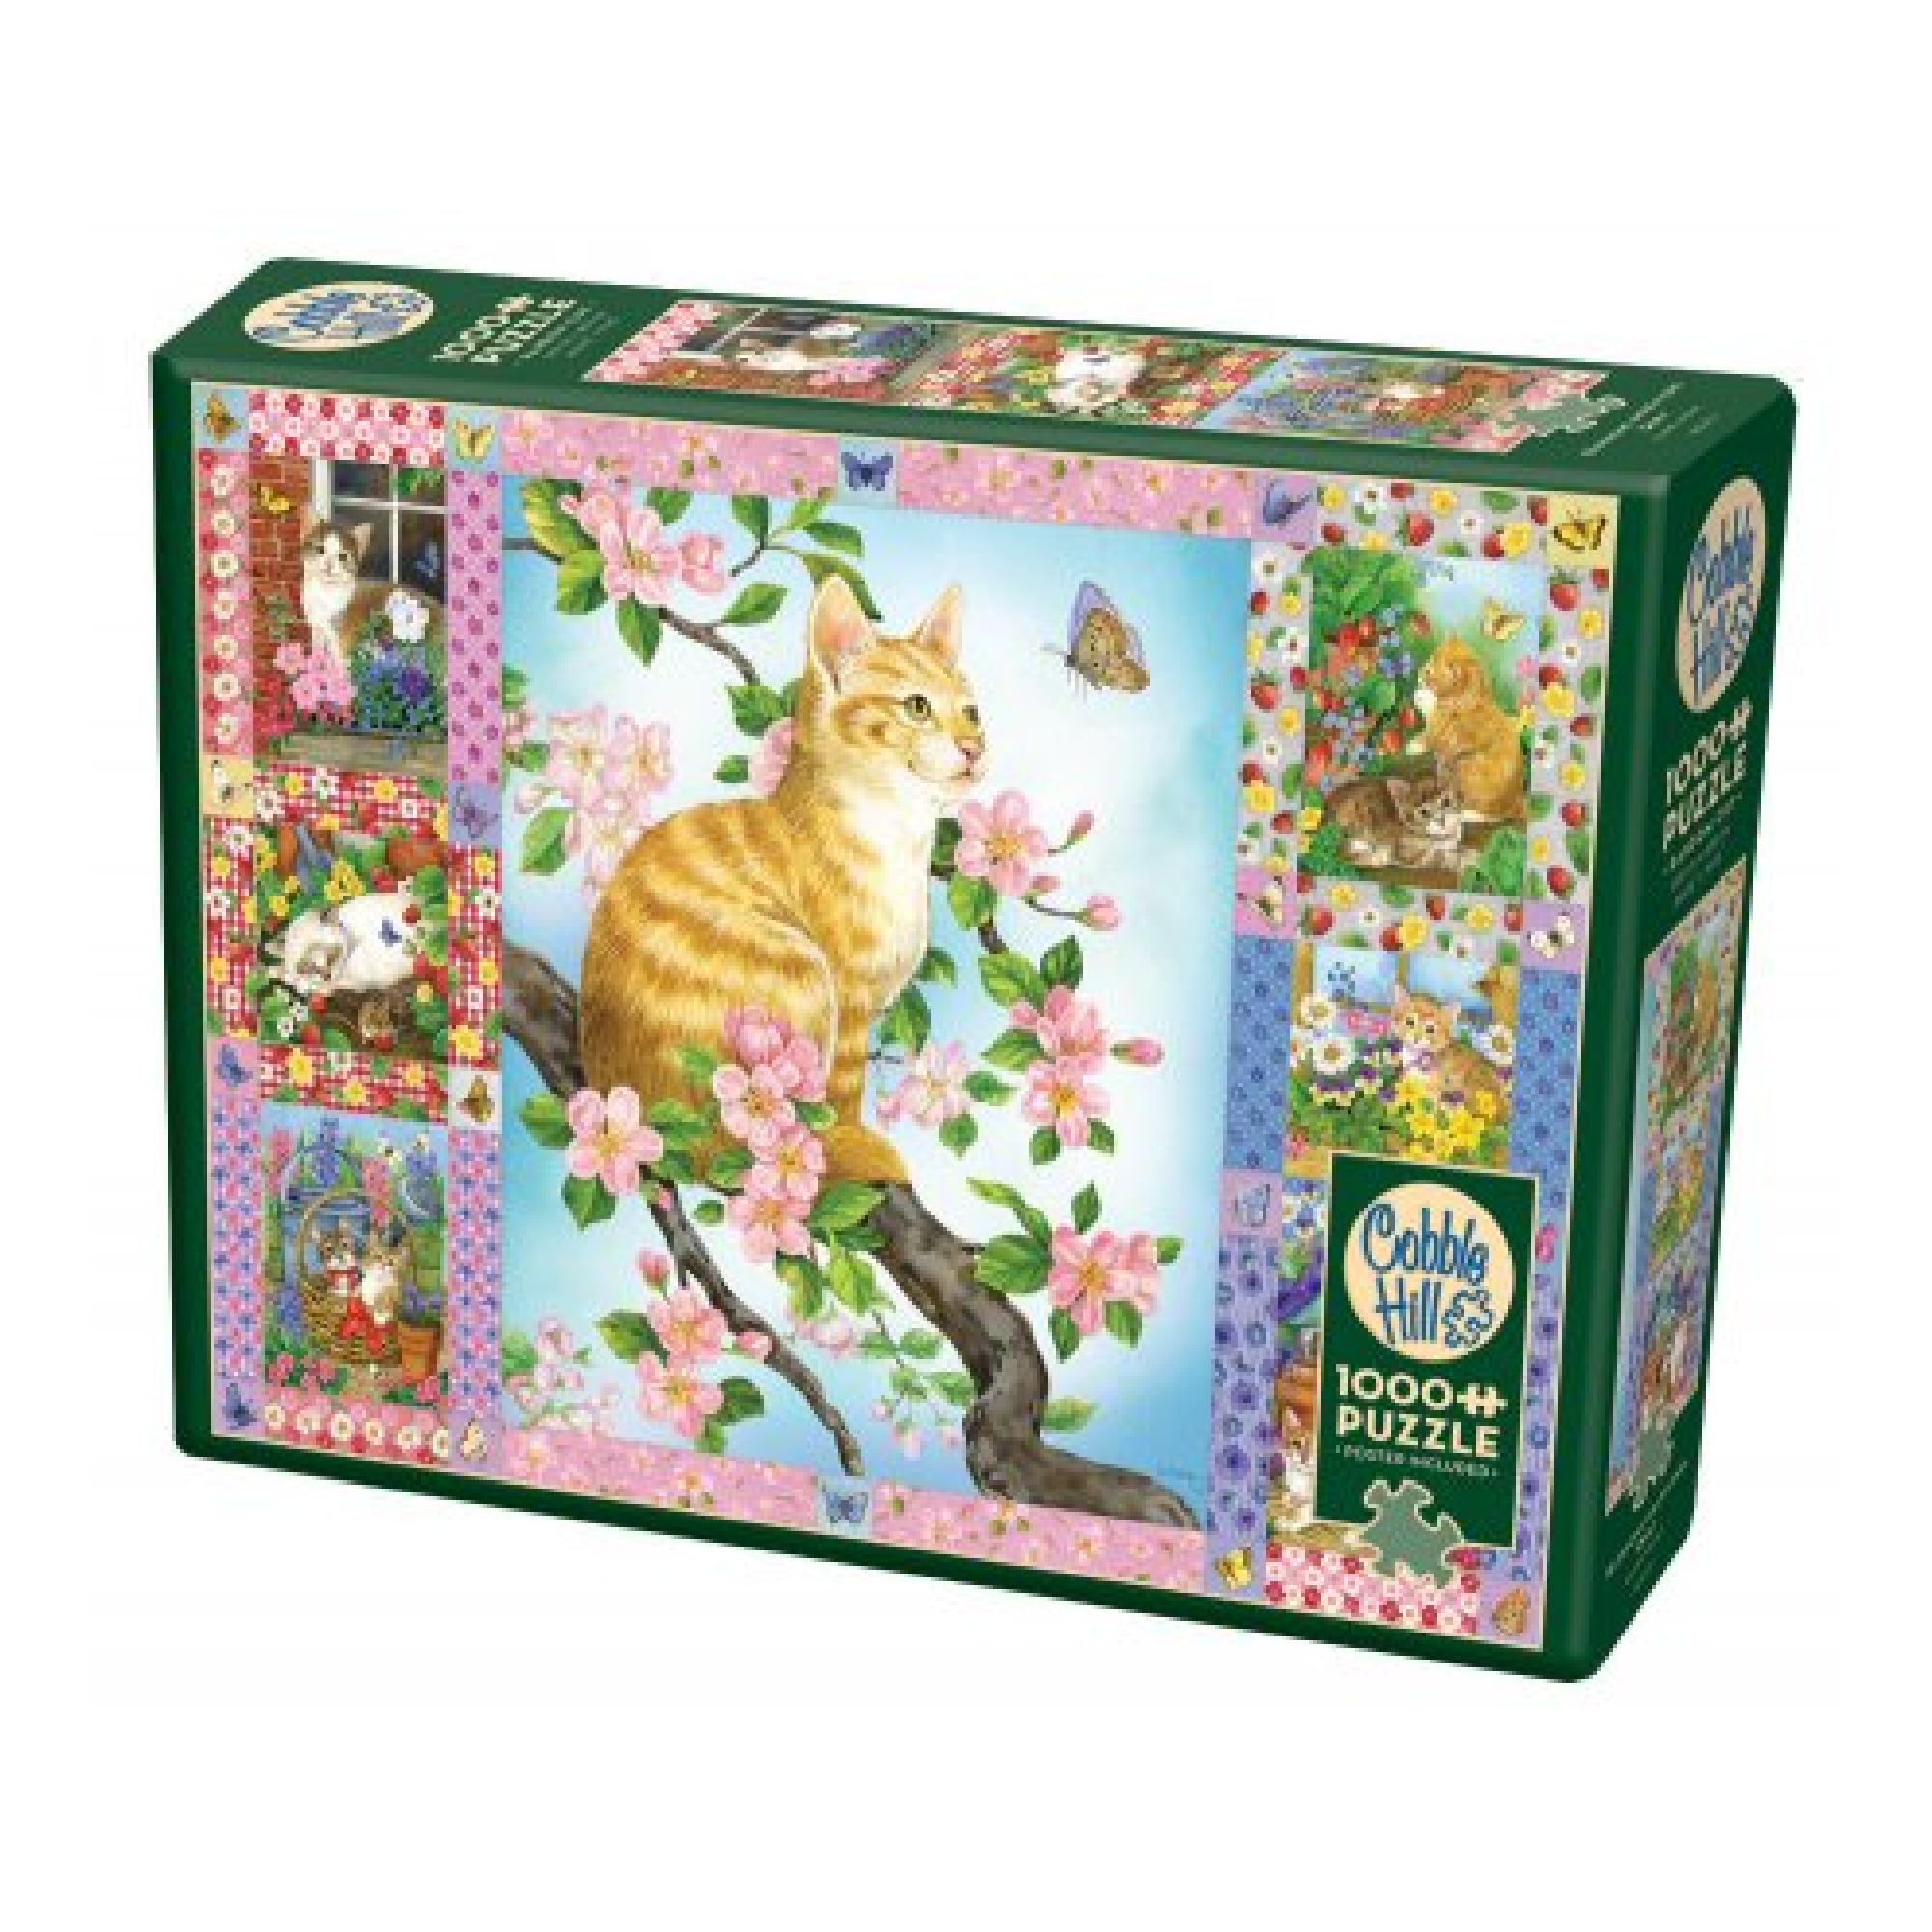 Cobble Hill Puzzle 1000: Blossoms and Kittens Quilt